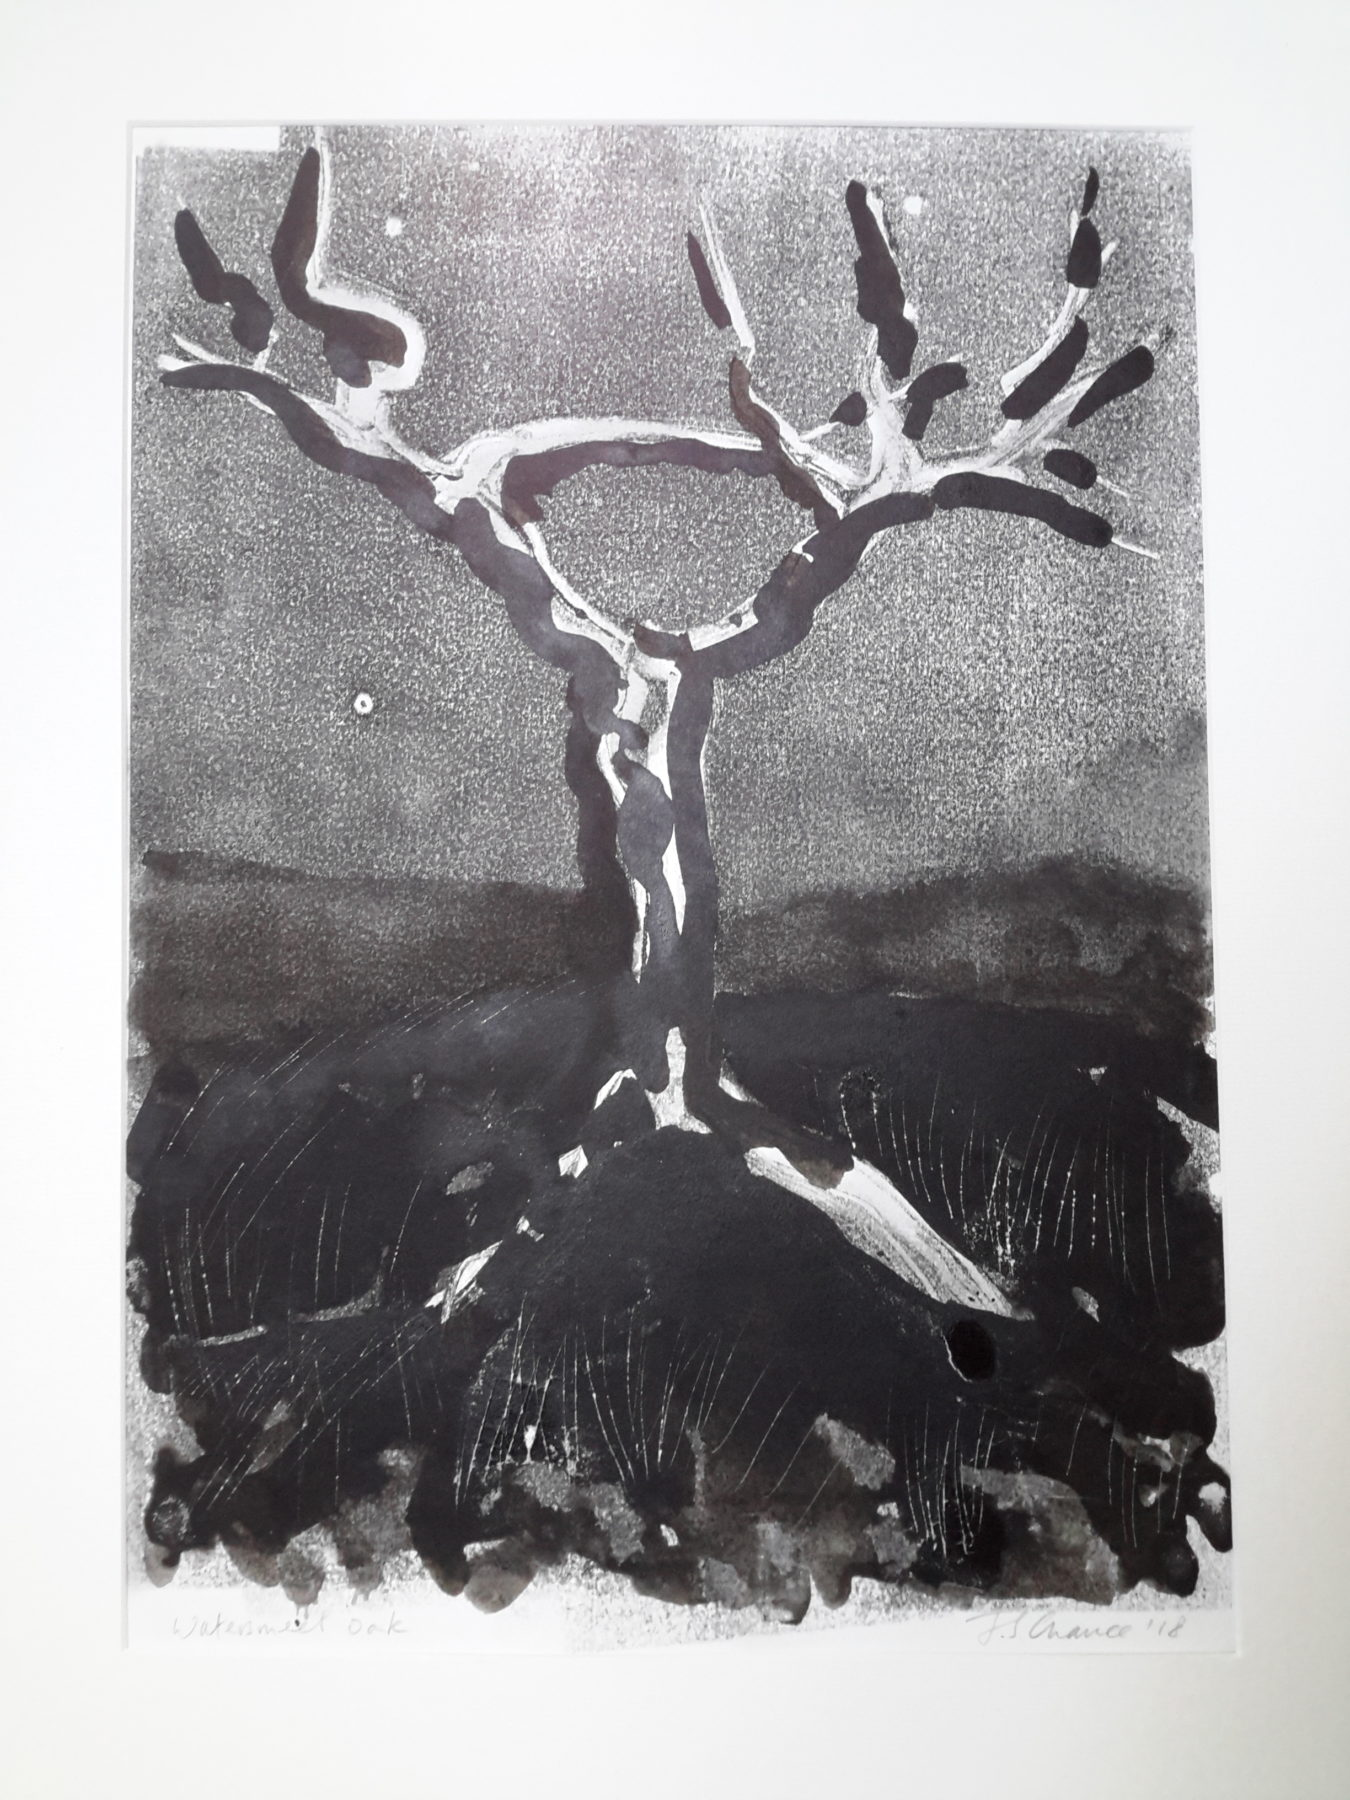 Ink wash has been used to create a composition with three elements: a dark black ground; grey sky and the abstracted branches of a tree.